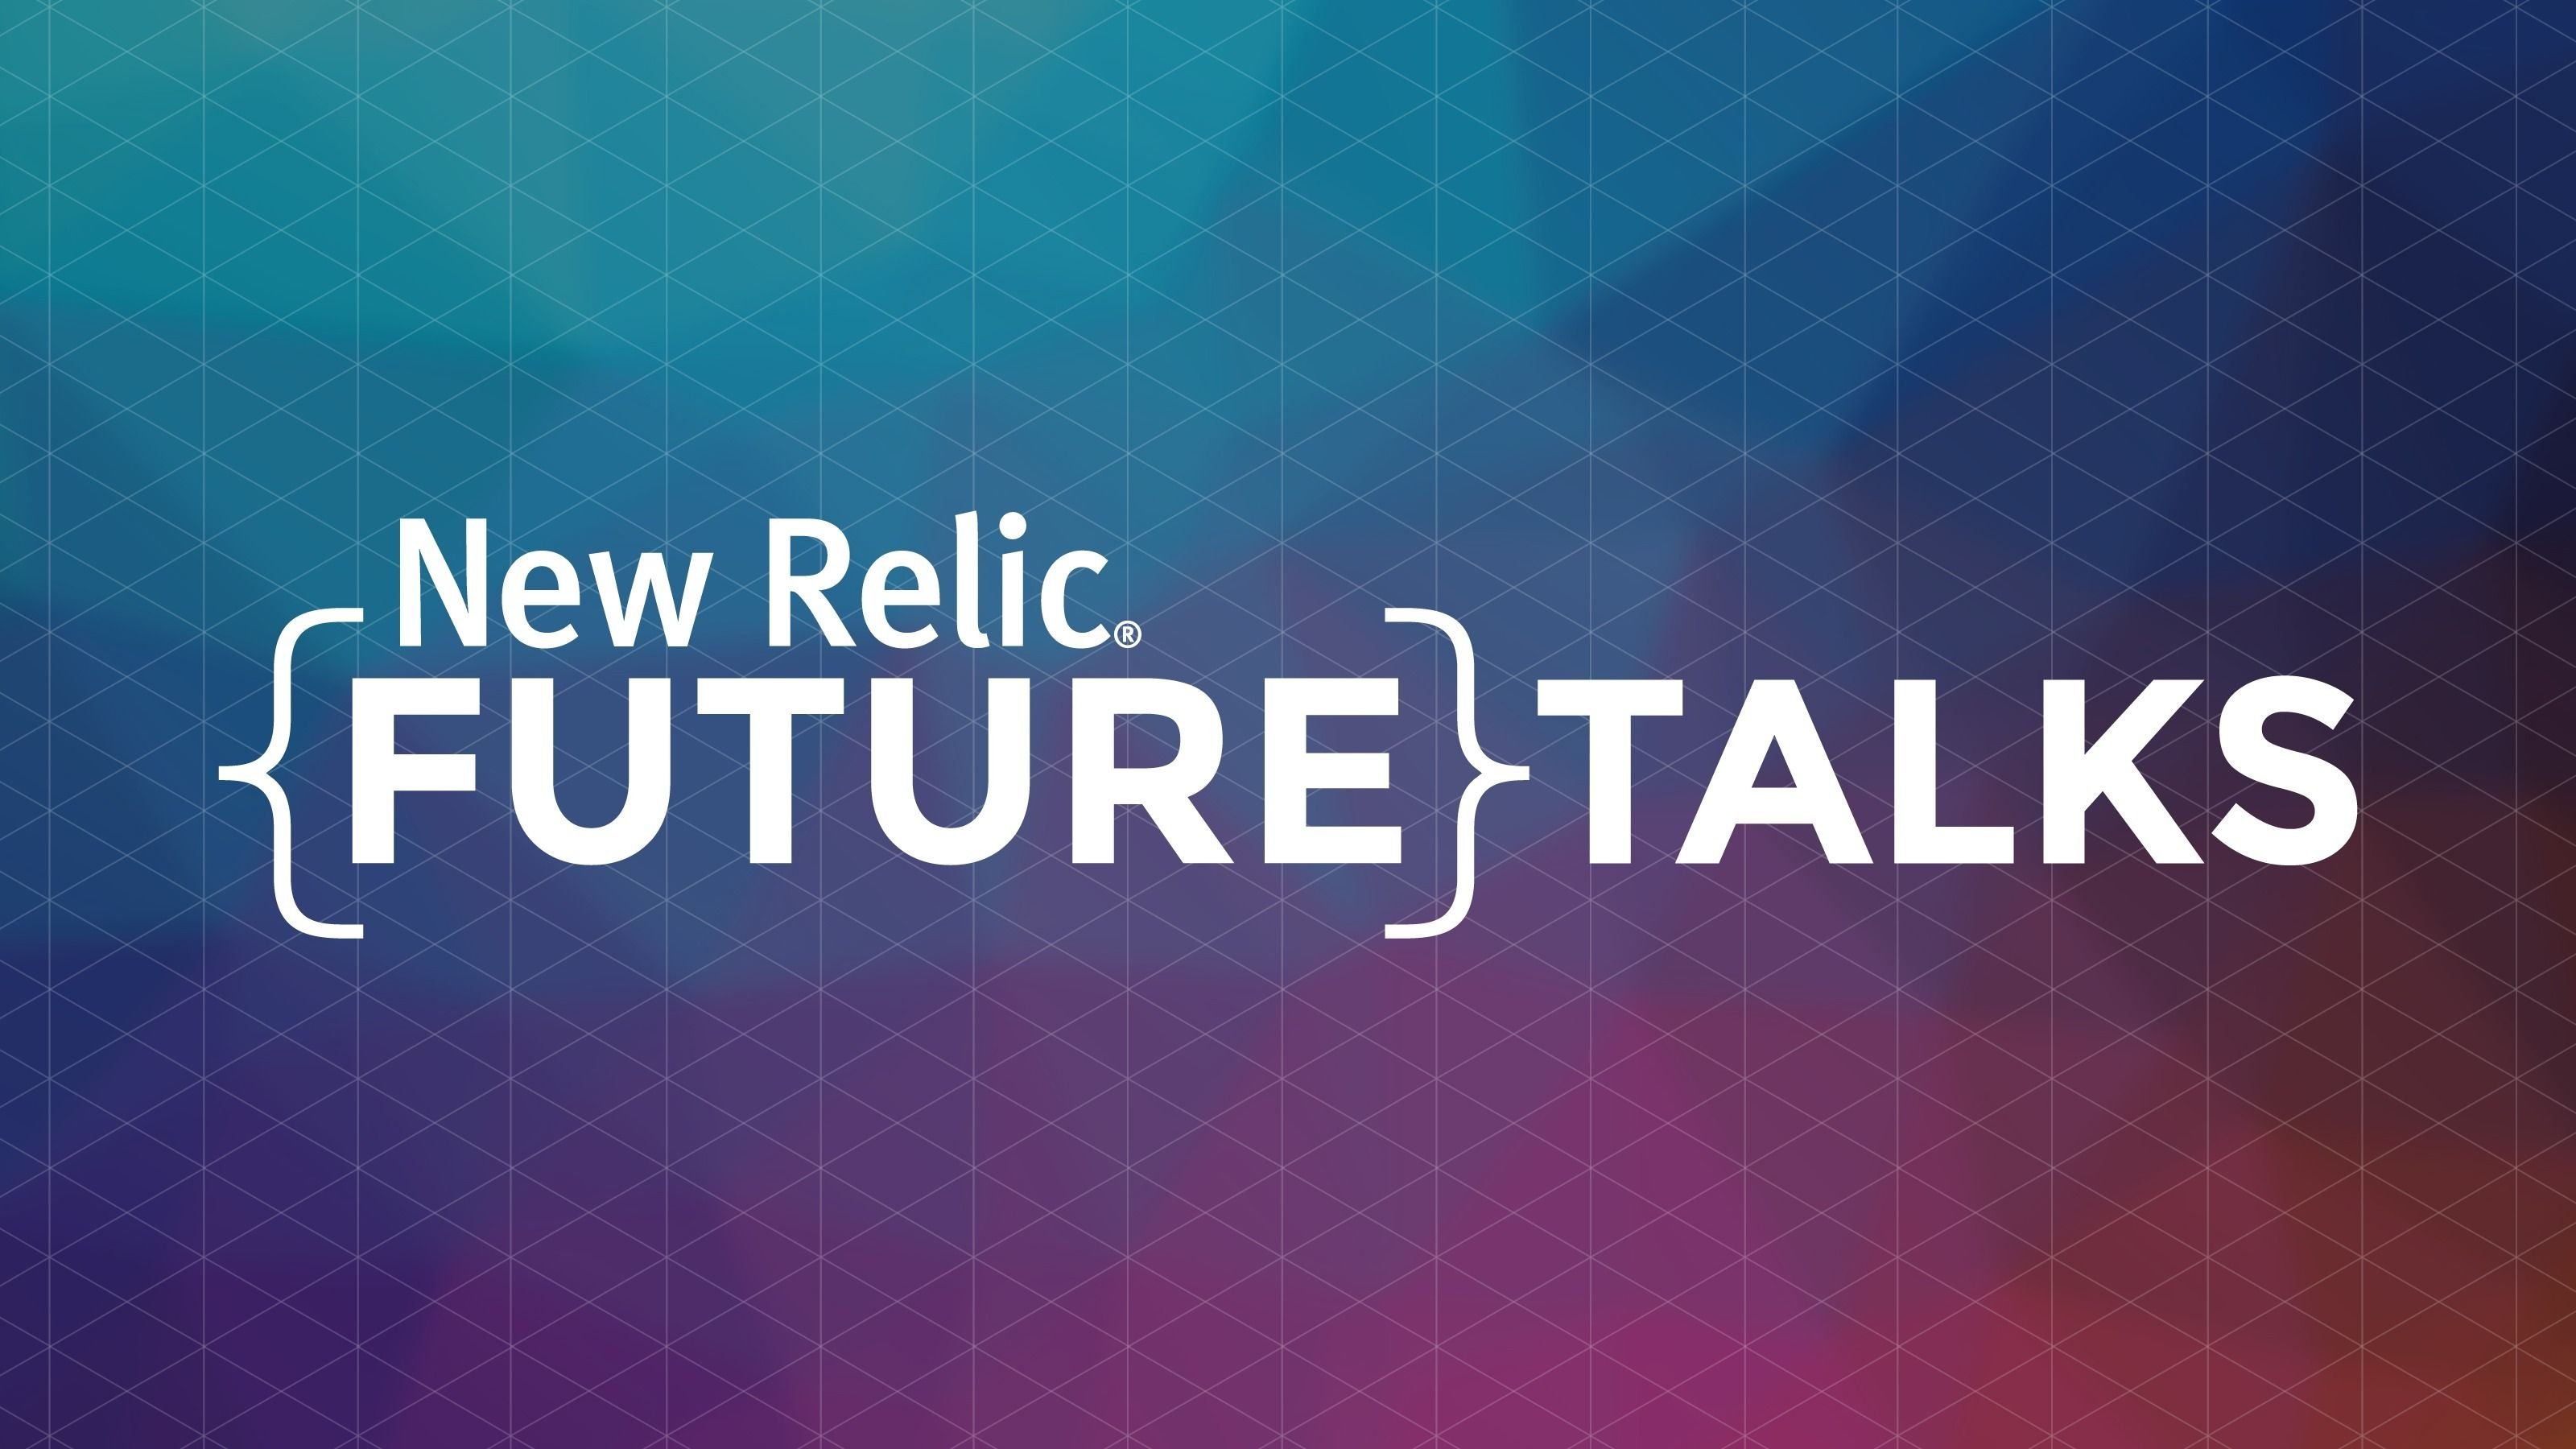 New Relic Virtual FutureTalks